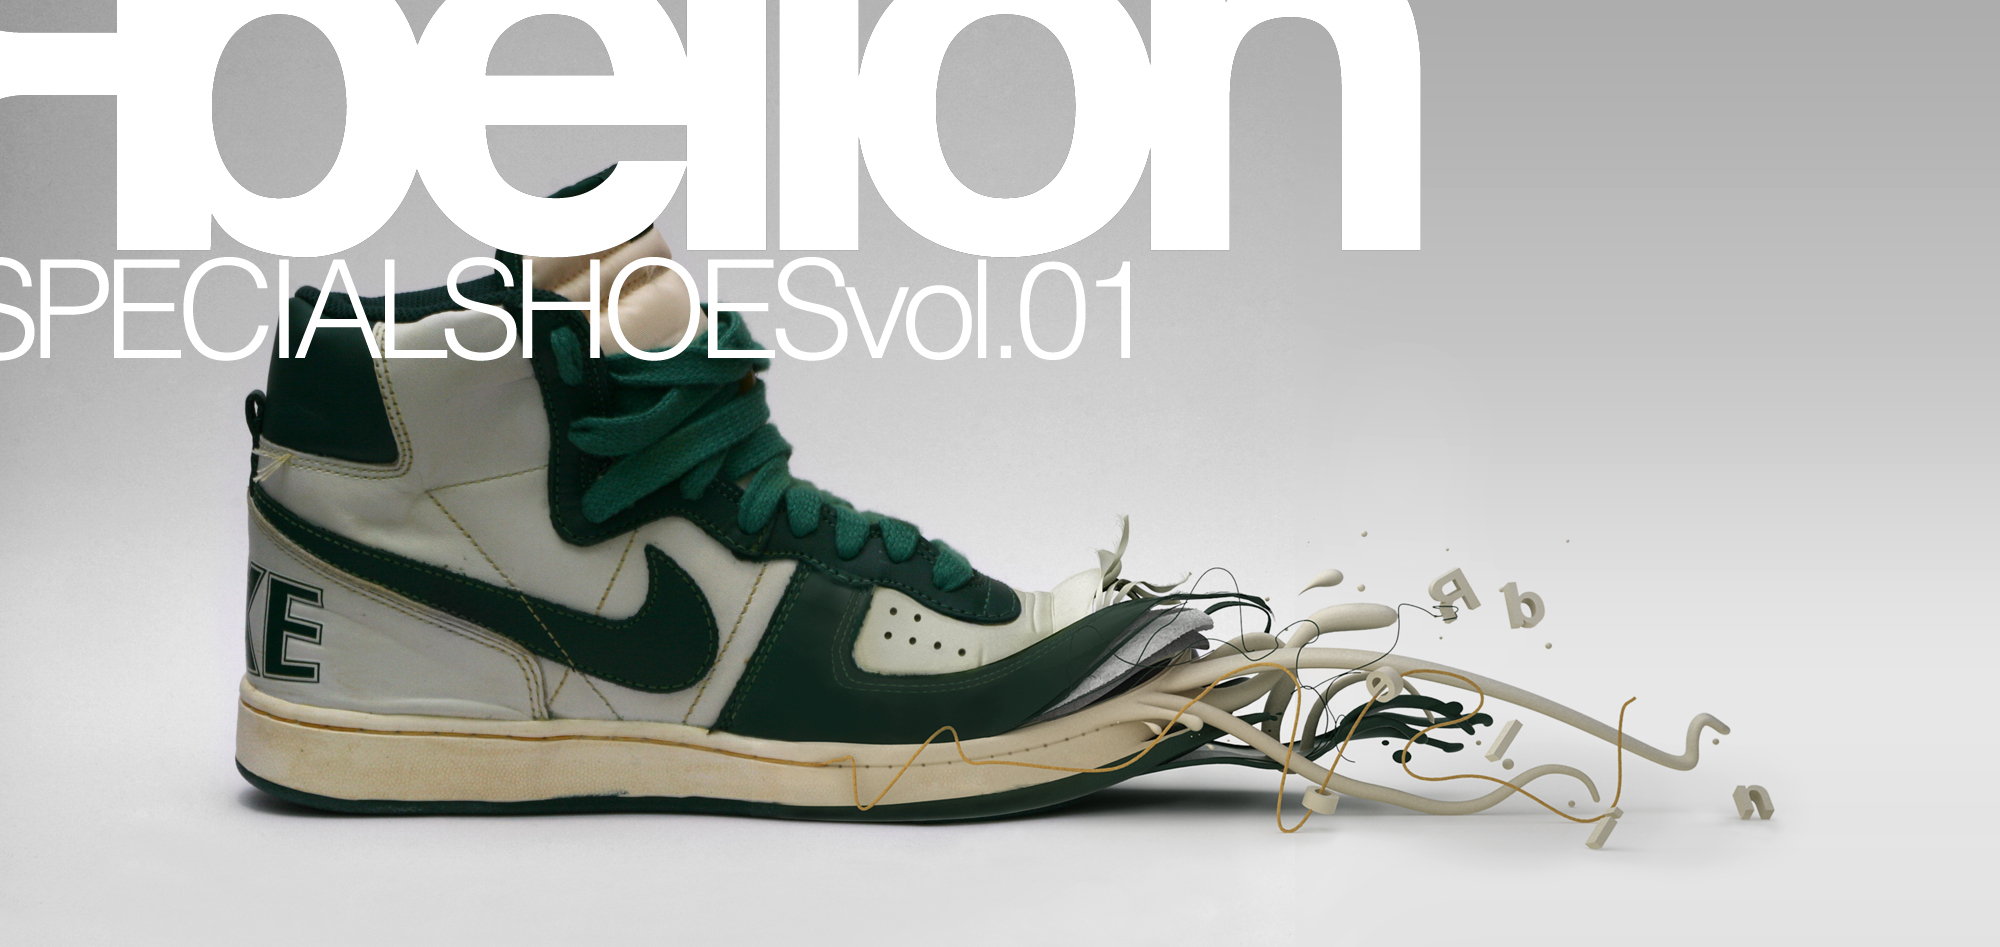 Special shoes rbelion by c4lito3d